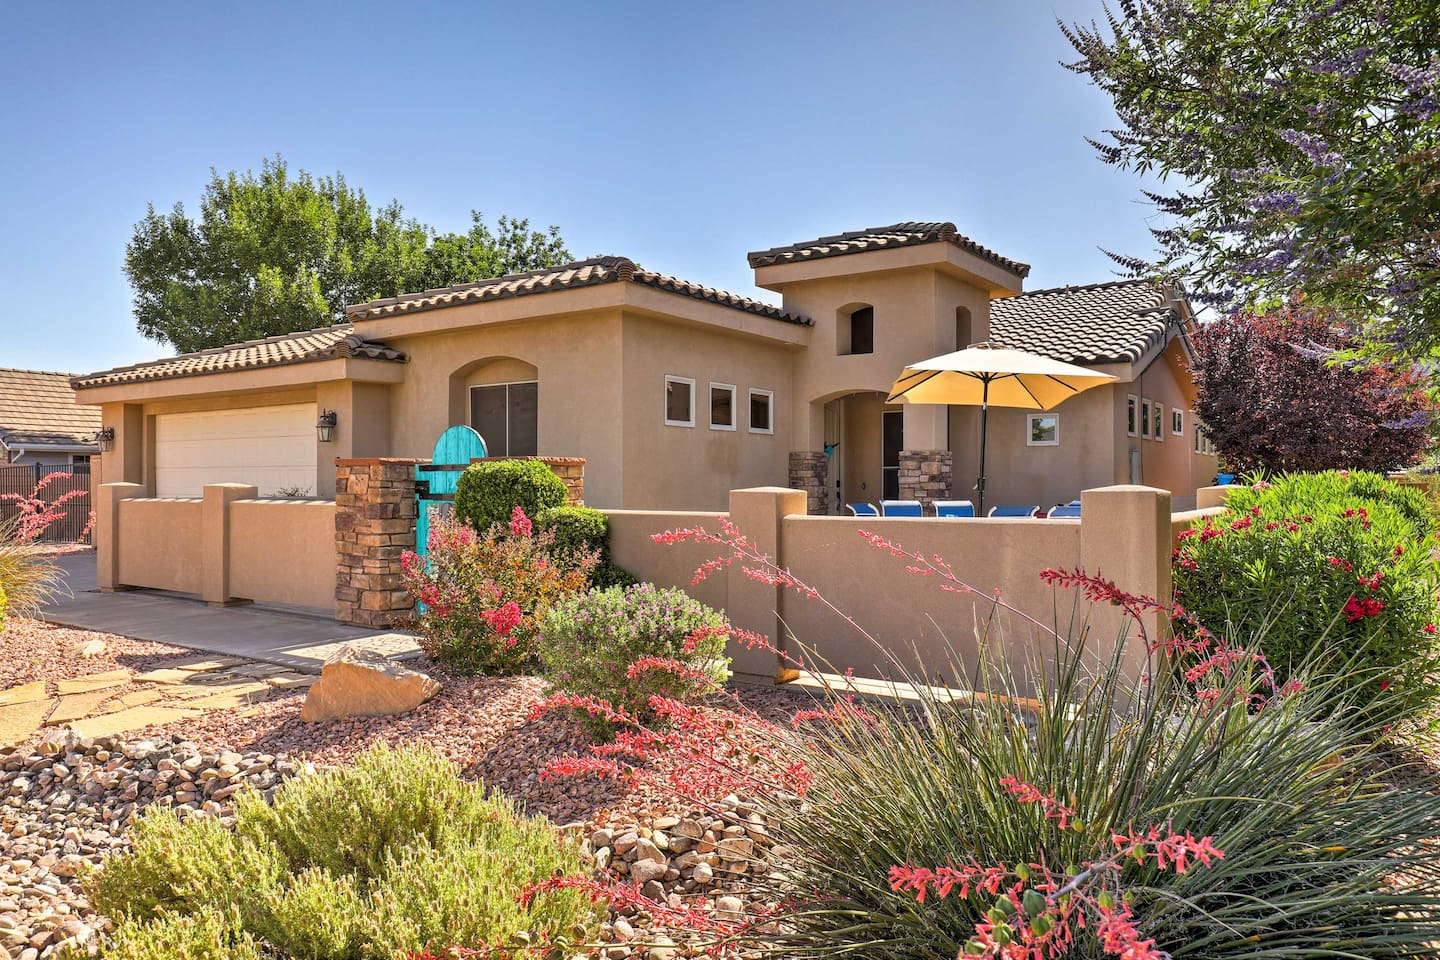 Discover the 'Bridge to Zion' at this beautiful La Verkin vacation rental home!